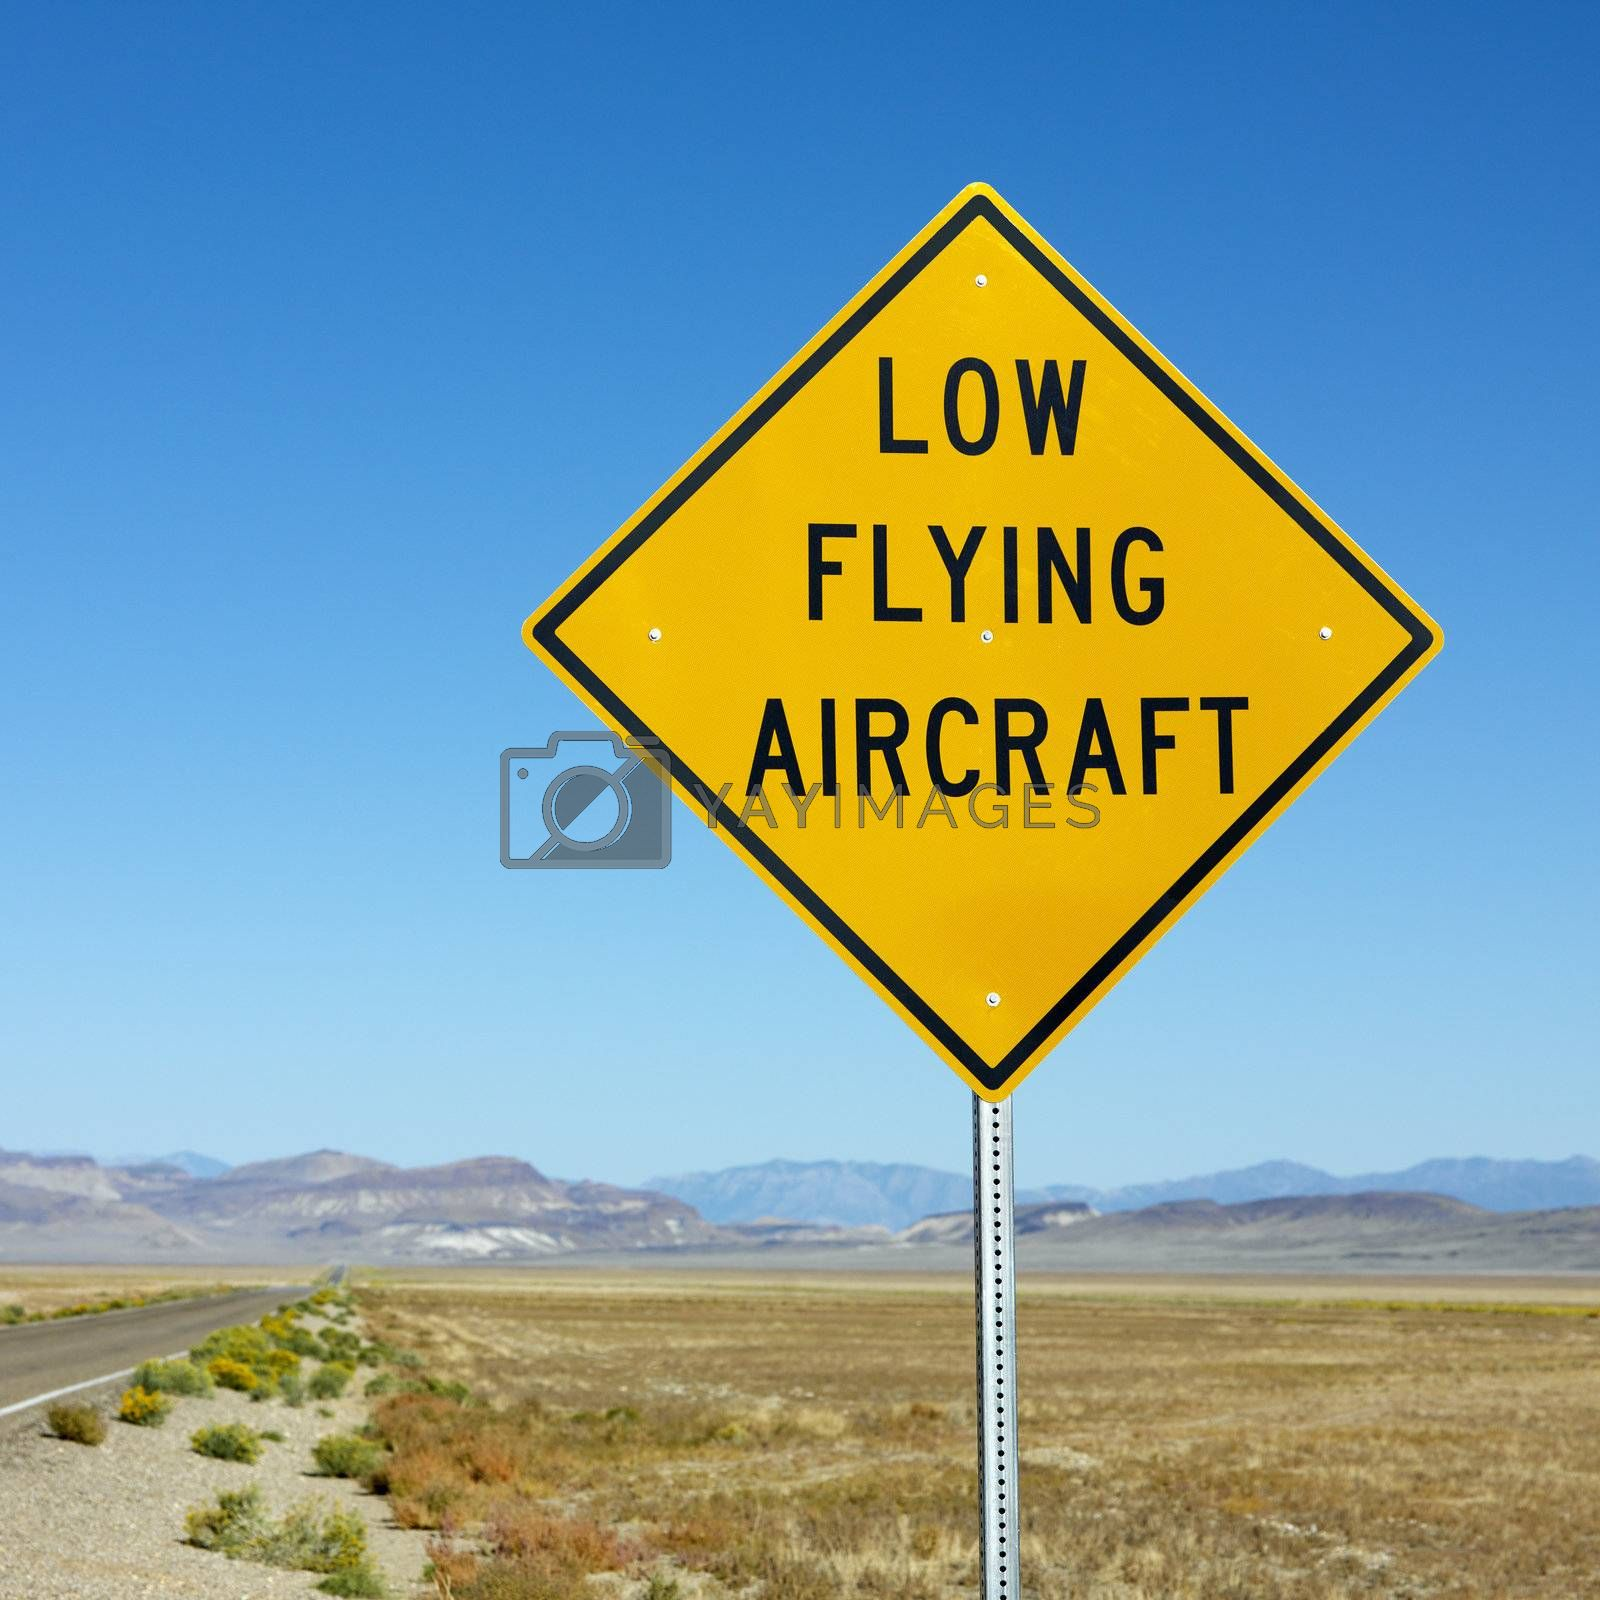 Low flying aircraft sign. by iofoto